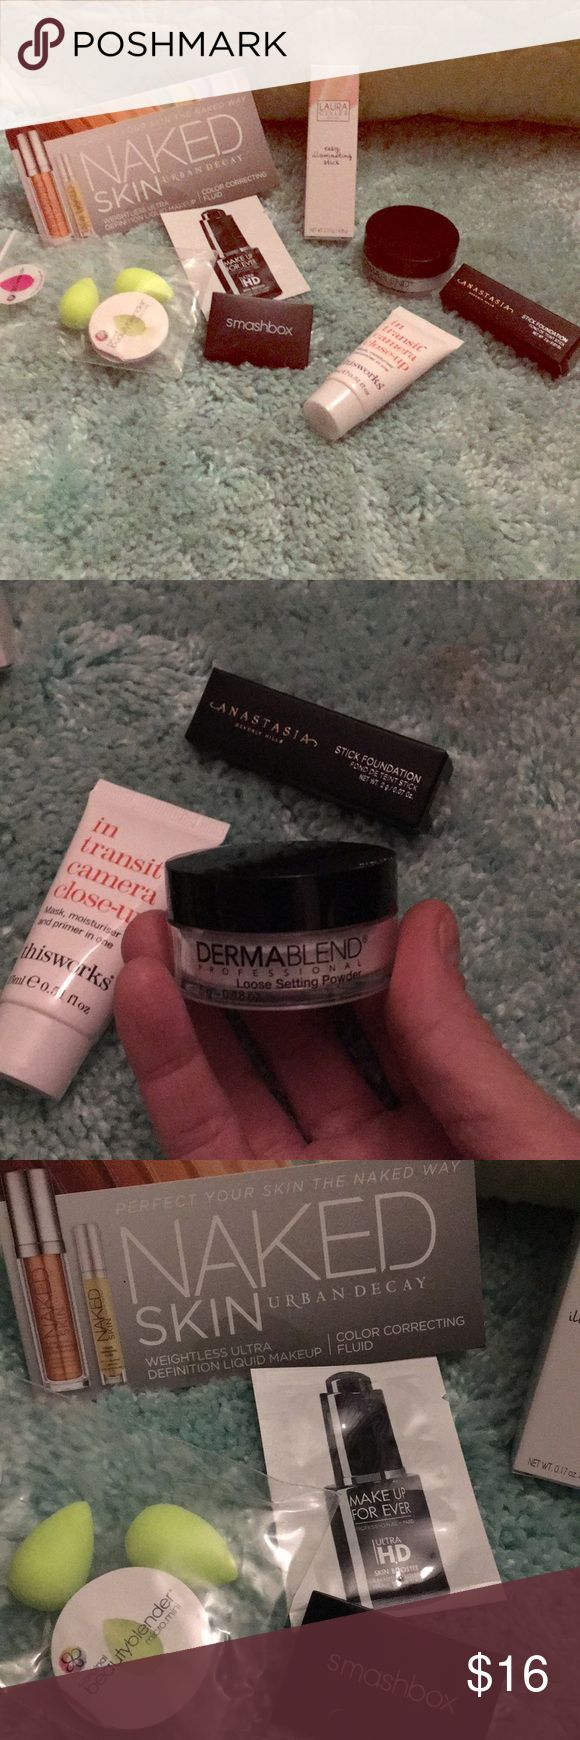 NWT High End Travel Size, Sample Size, Full Size Includes: • Laura Geller Easy Illuminating Stick FULL SIZE in Ethereal  •Beauty Blender Micro Mini's Set of 2 • Smashbox Eyeshadow Duo in Covershot Golden Hour Psyched and Turned On • thisworks - - in transit camera close-up (0.5 oz) • Dermablend Loose Setting Powder (0.18 oz) • Anastasia Beverly Hills Stick Foundation in Fawn • Urban Decay Naked Skin Color Correcting Fluid Samples • Makeup Forever Ultra HD Skin Booster Sample Sephora Makeup